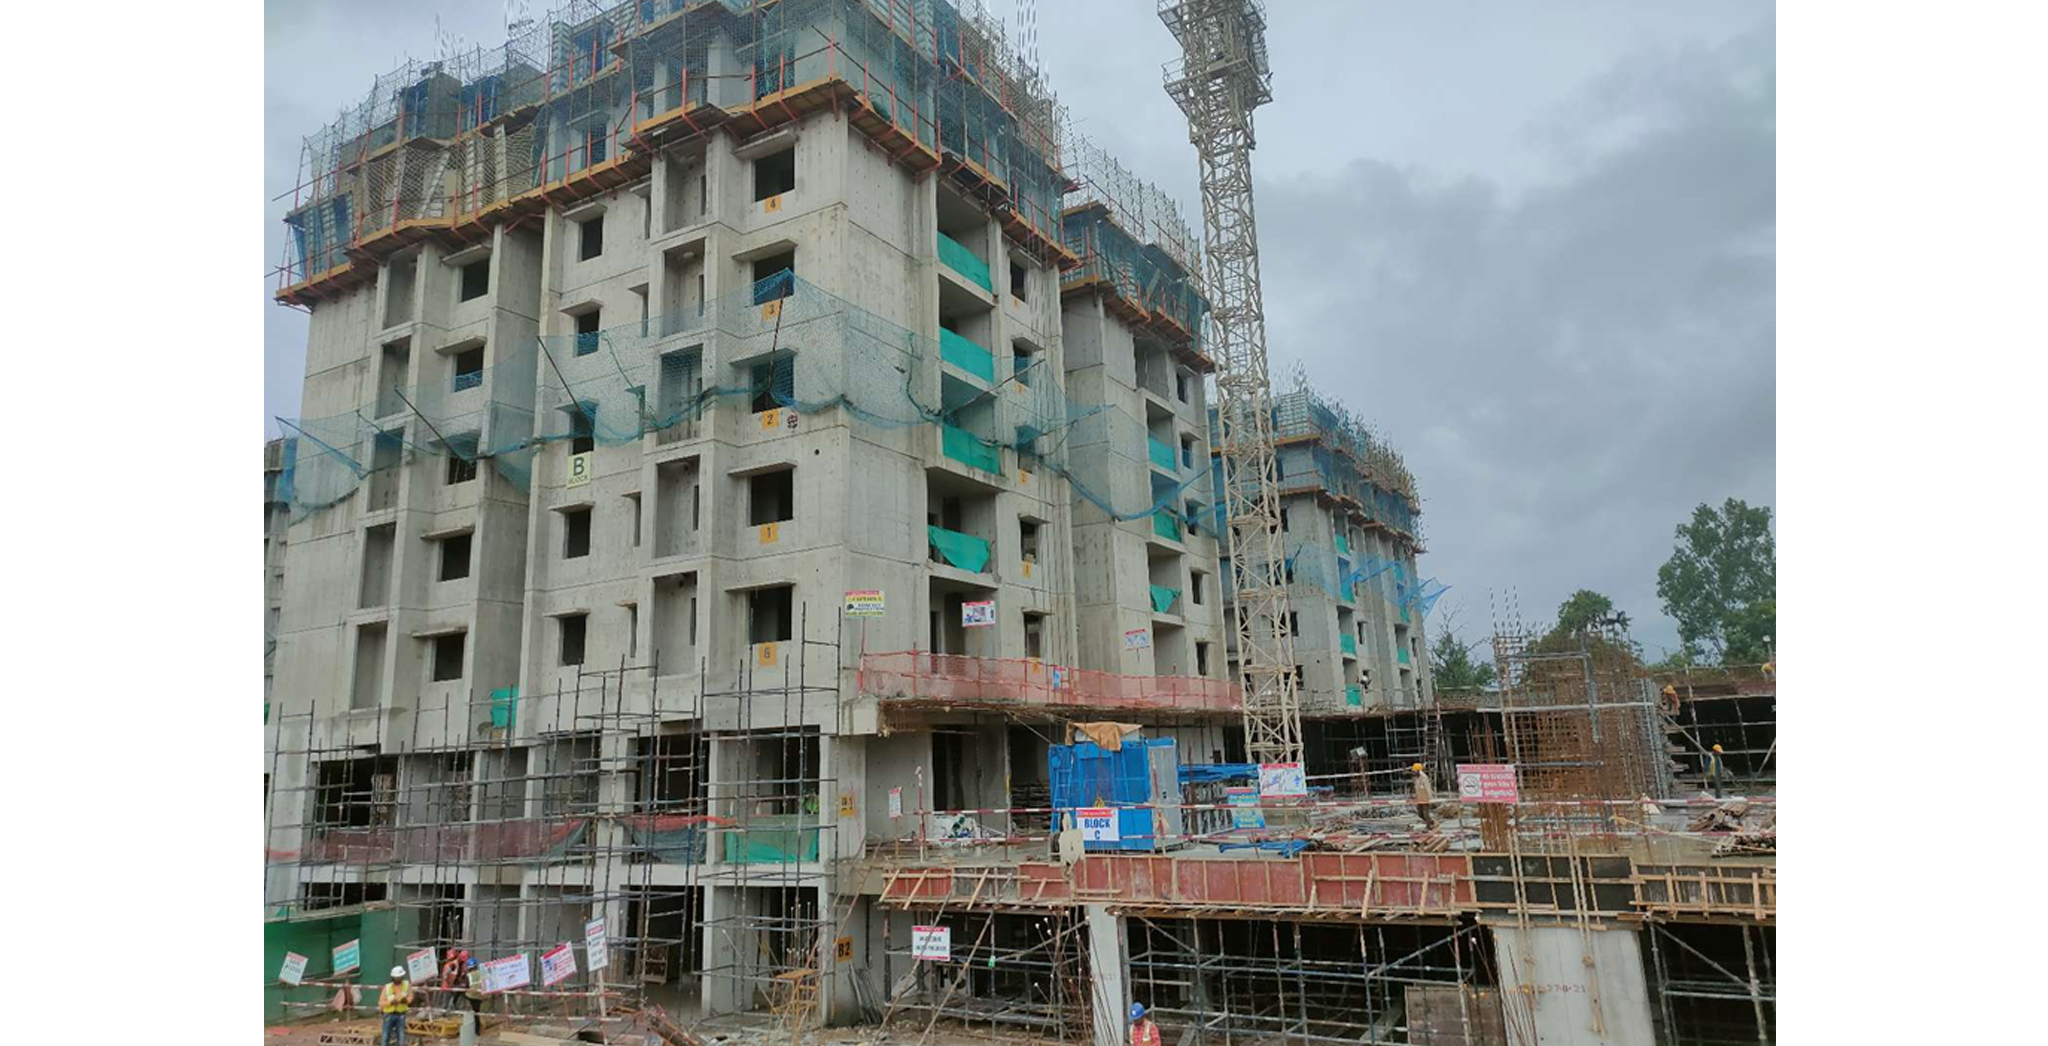 Aug 2021 - Block B: 4th floor (100% completed), 5th Floor (50% completed)